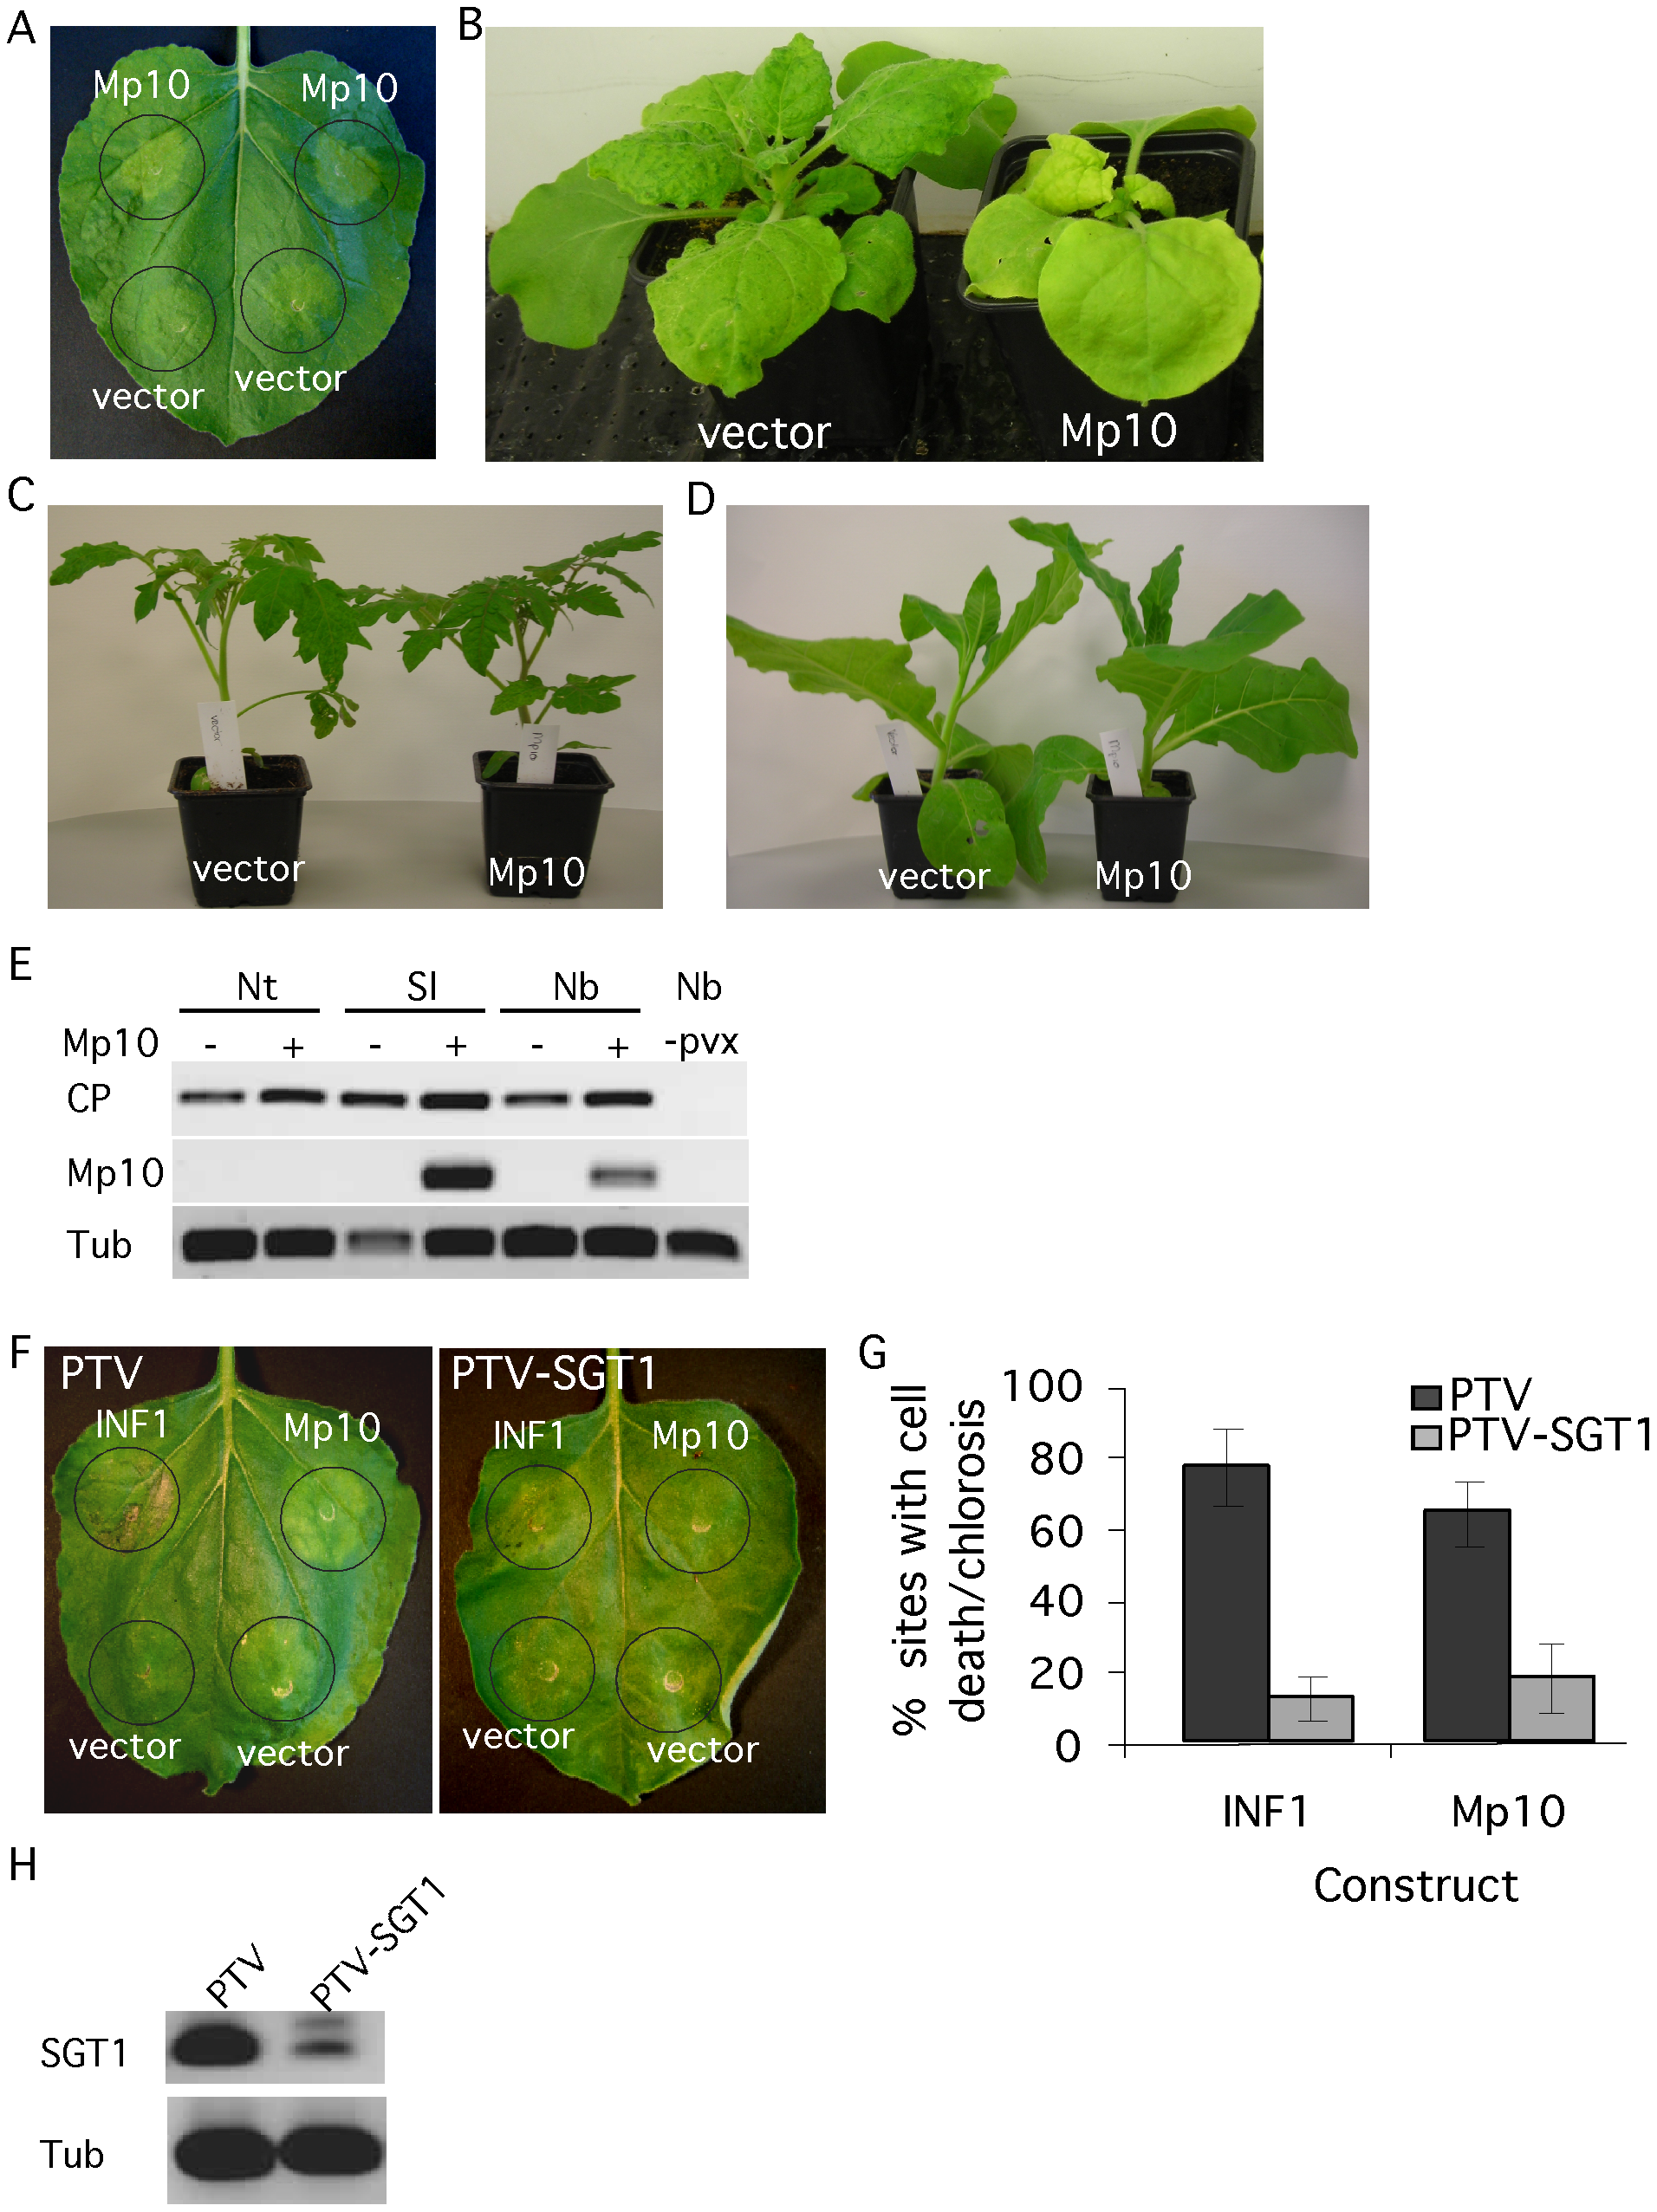 The candidate effector Mp10 induces chlorosis specifically in <i>N. benthamiana</i>.